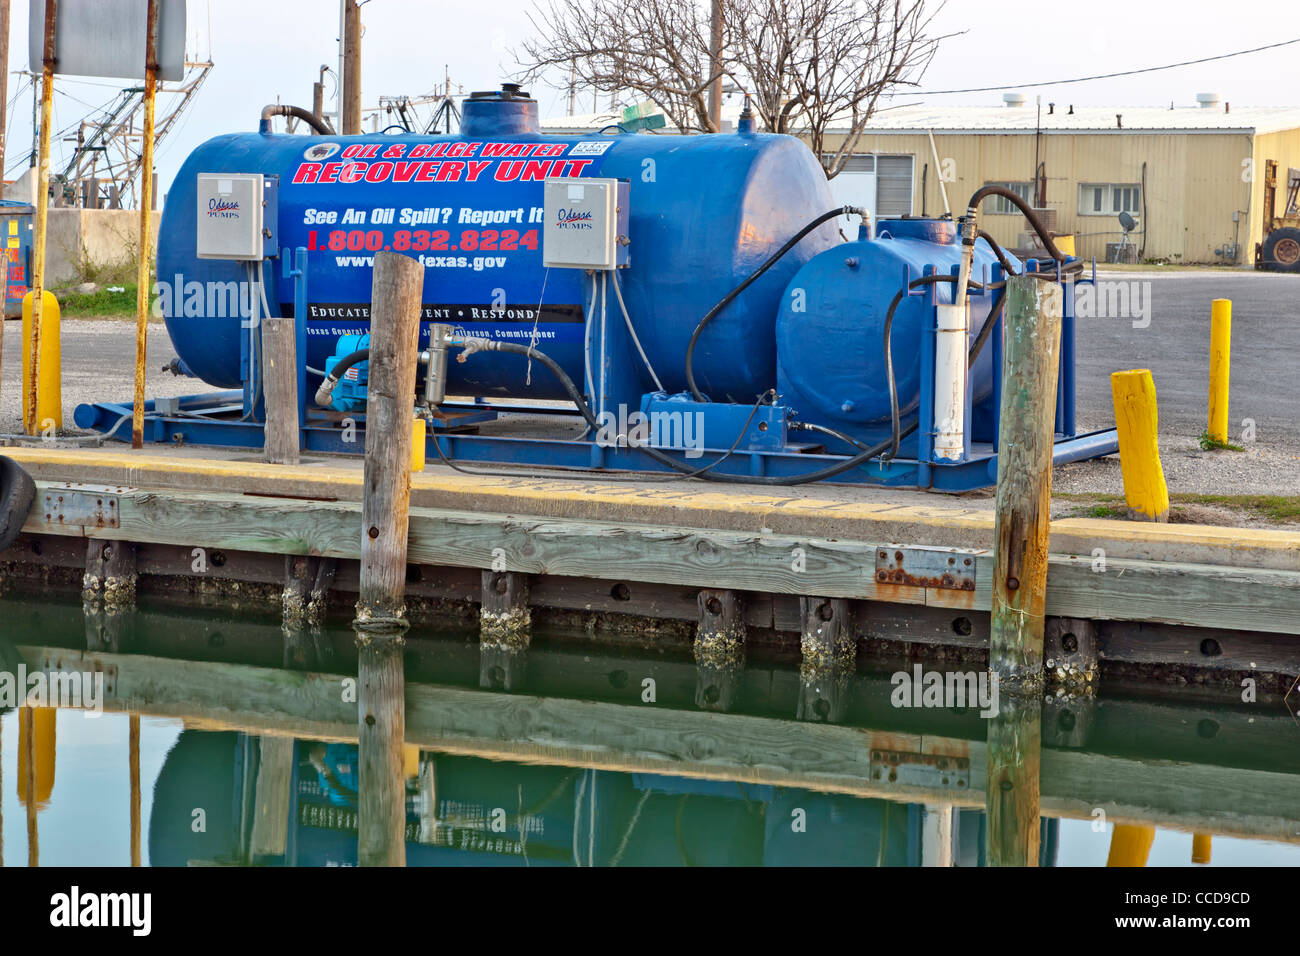 Oil & bilge water recovery unit. - Stock Image